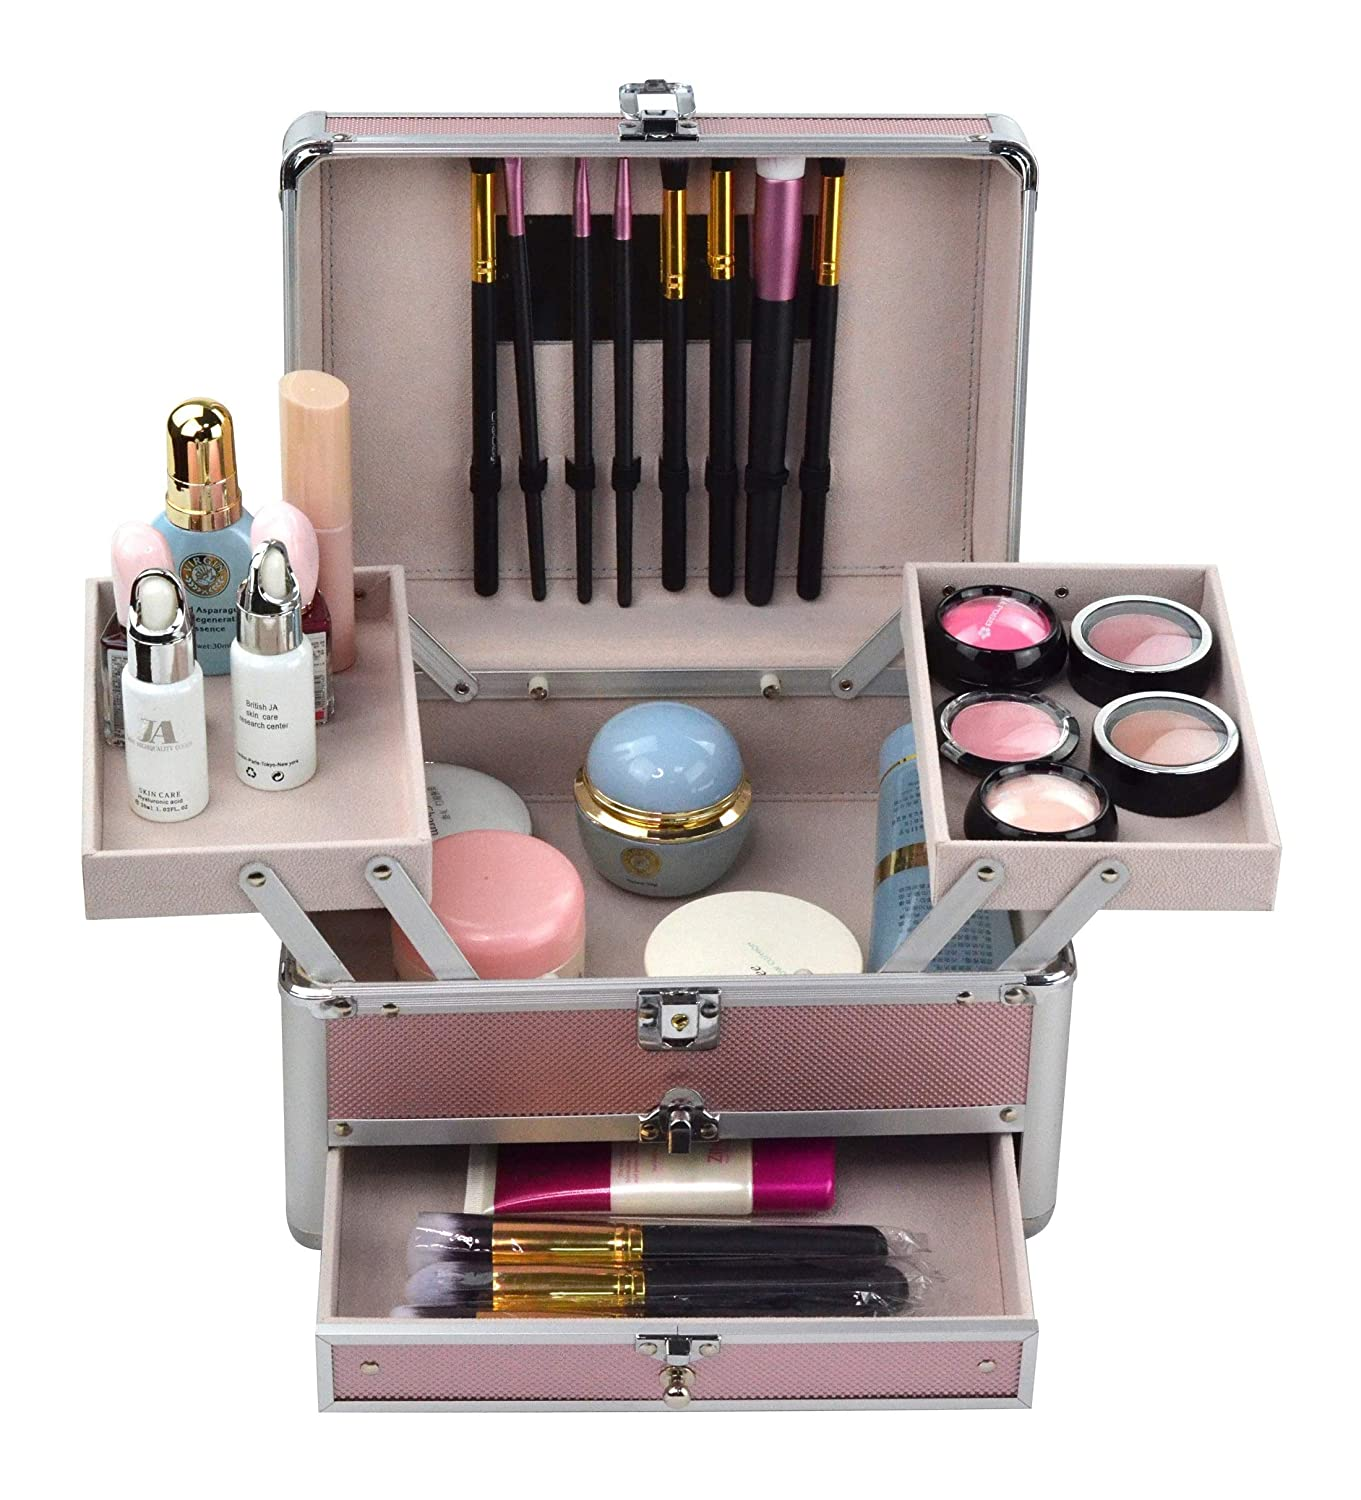 Reme Makeup Train Case Cosmetic Organizer Case With Trays and Drawer for Cosmetics,Jewelry Box or Gift Box,Aluminum Frame